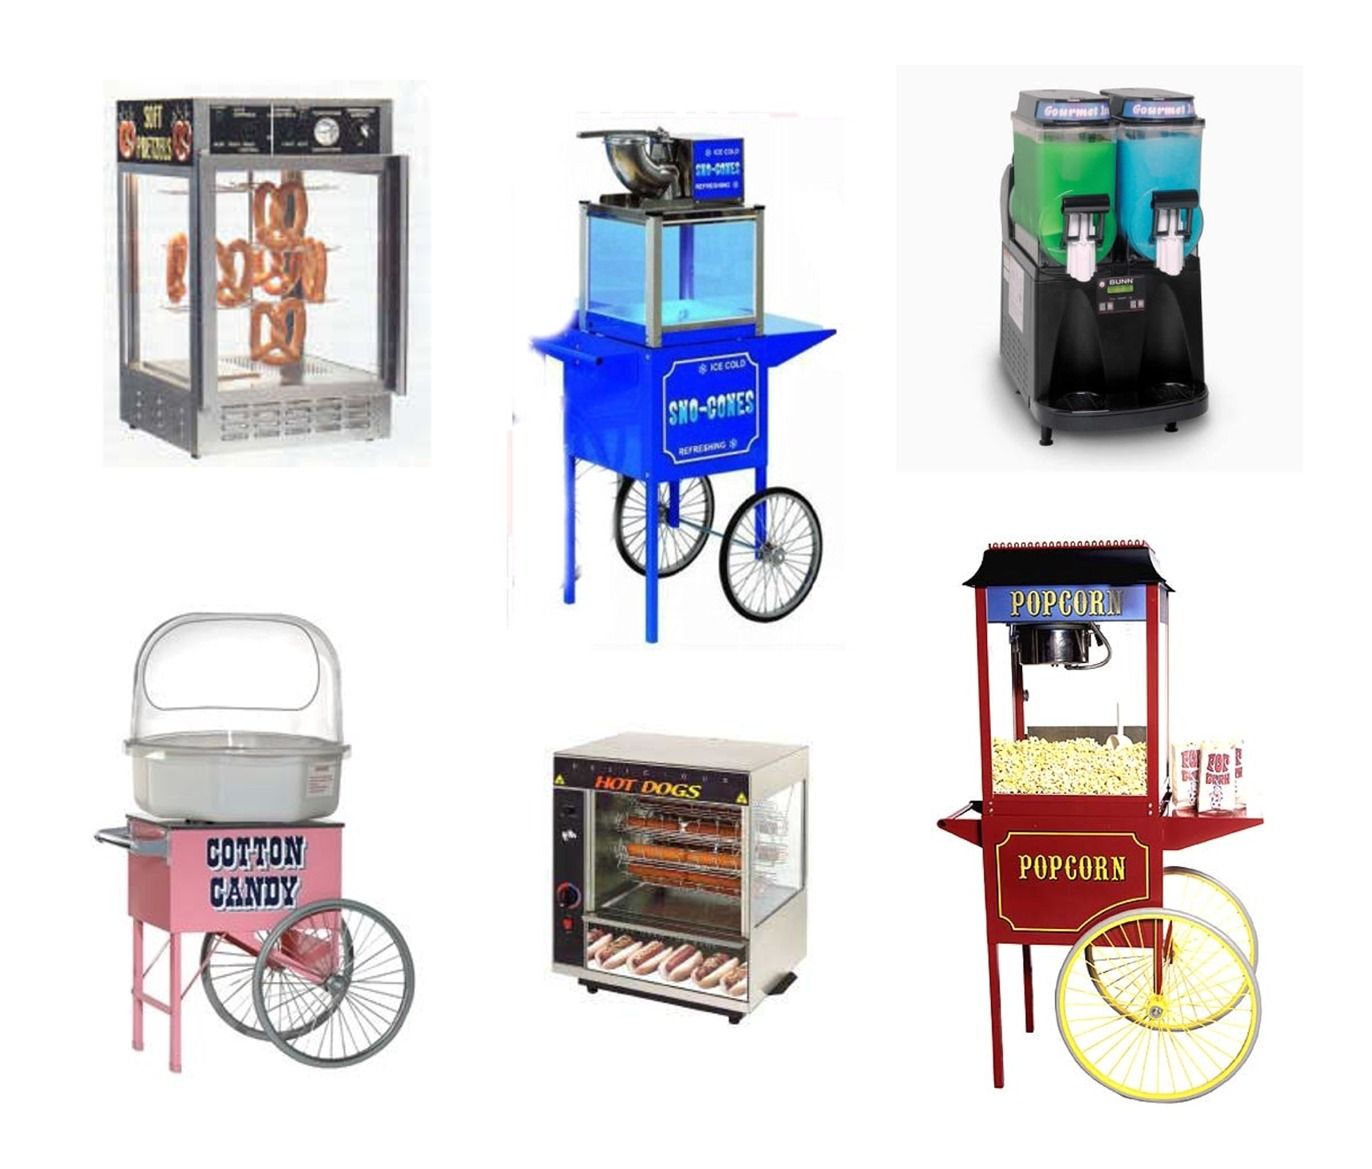 Concession Equipment You Can Rent For Your Special Event Supplies Sold Separately Wwww Preferredpartyplace Co Concession Equipment Concession Candy Popcorn